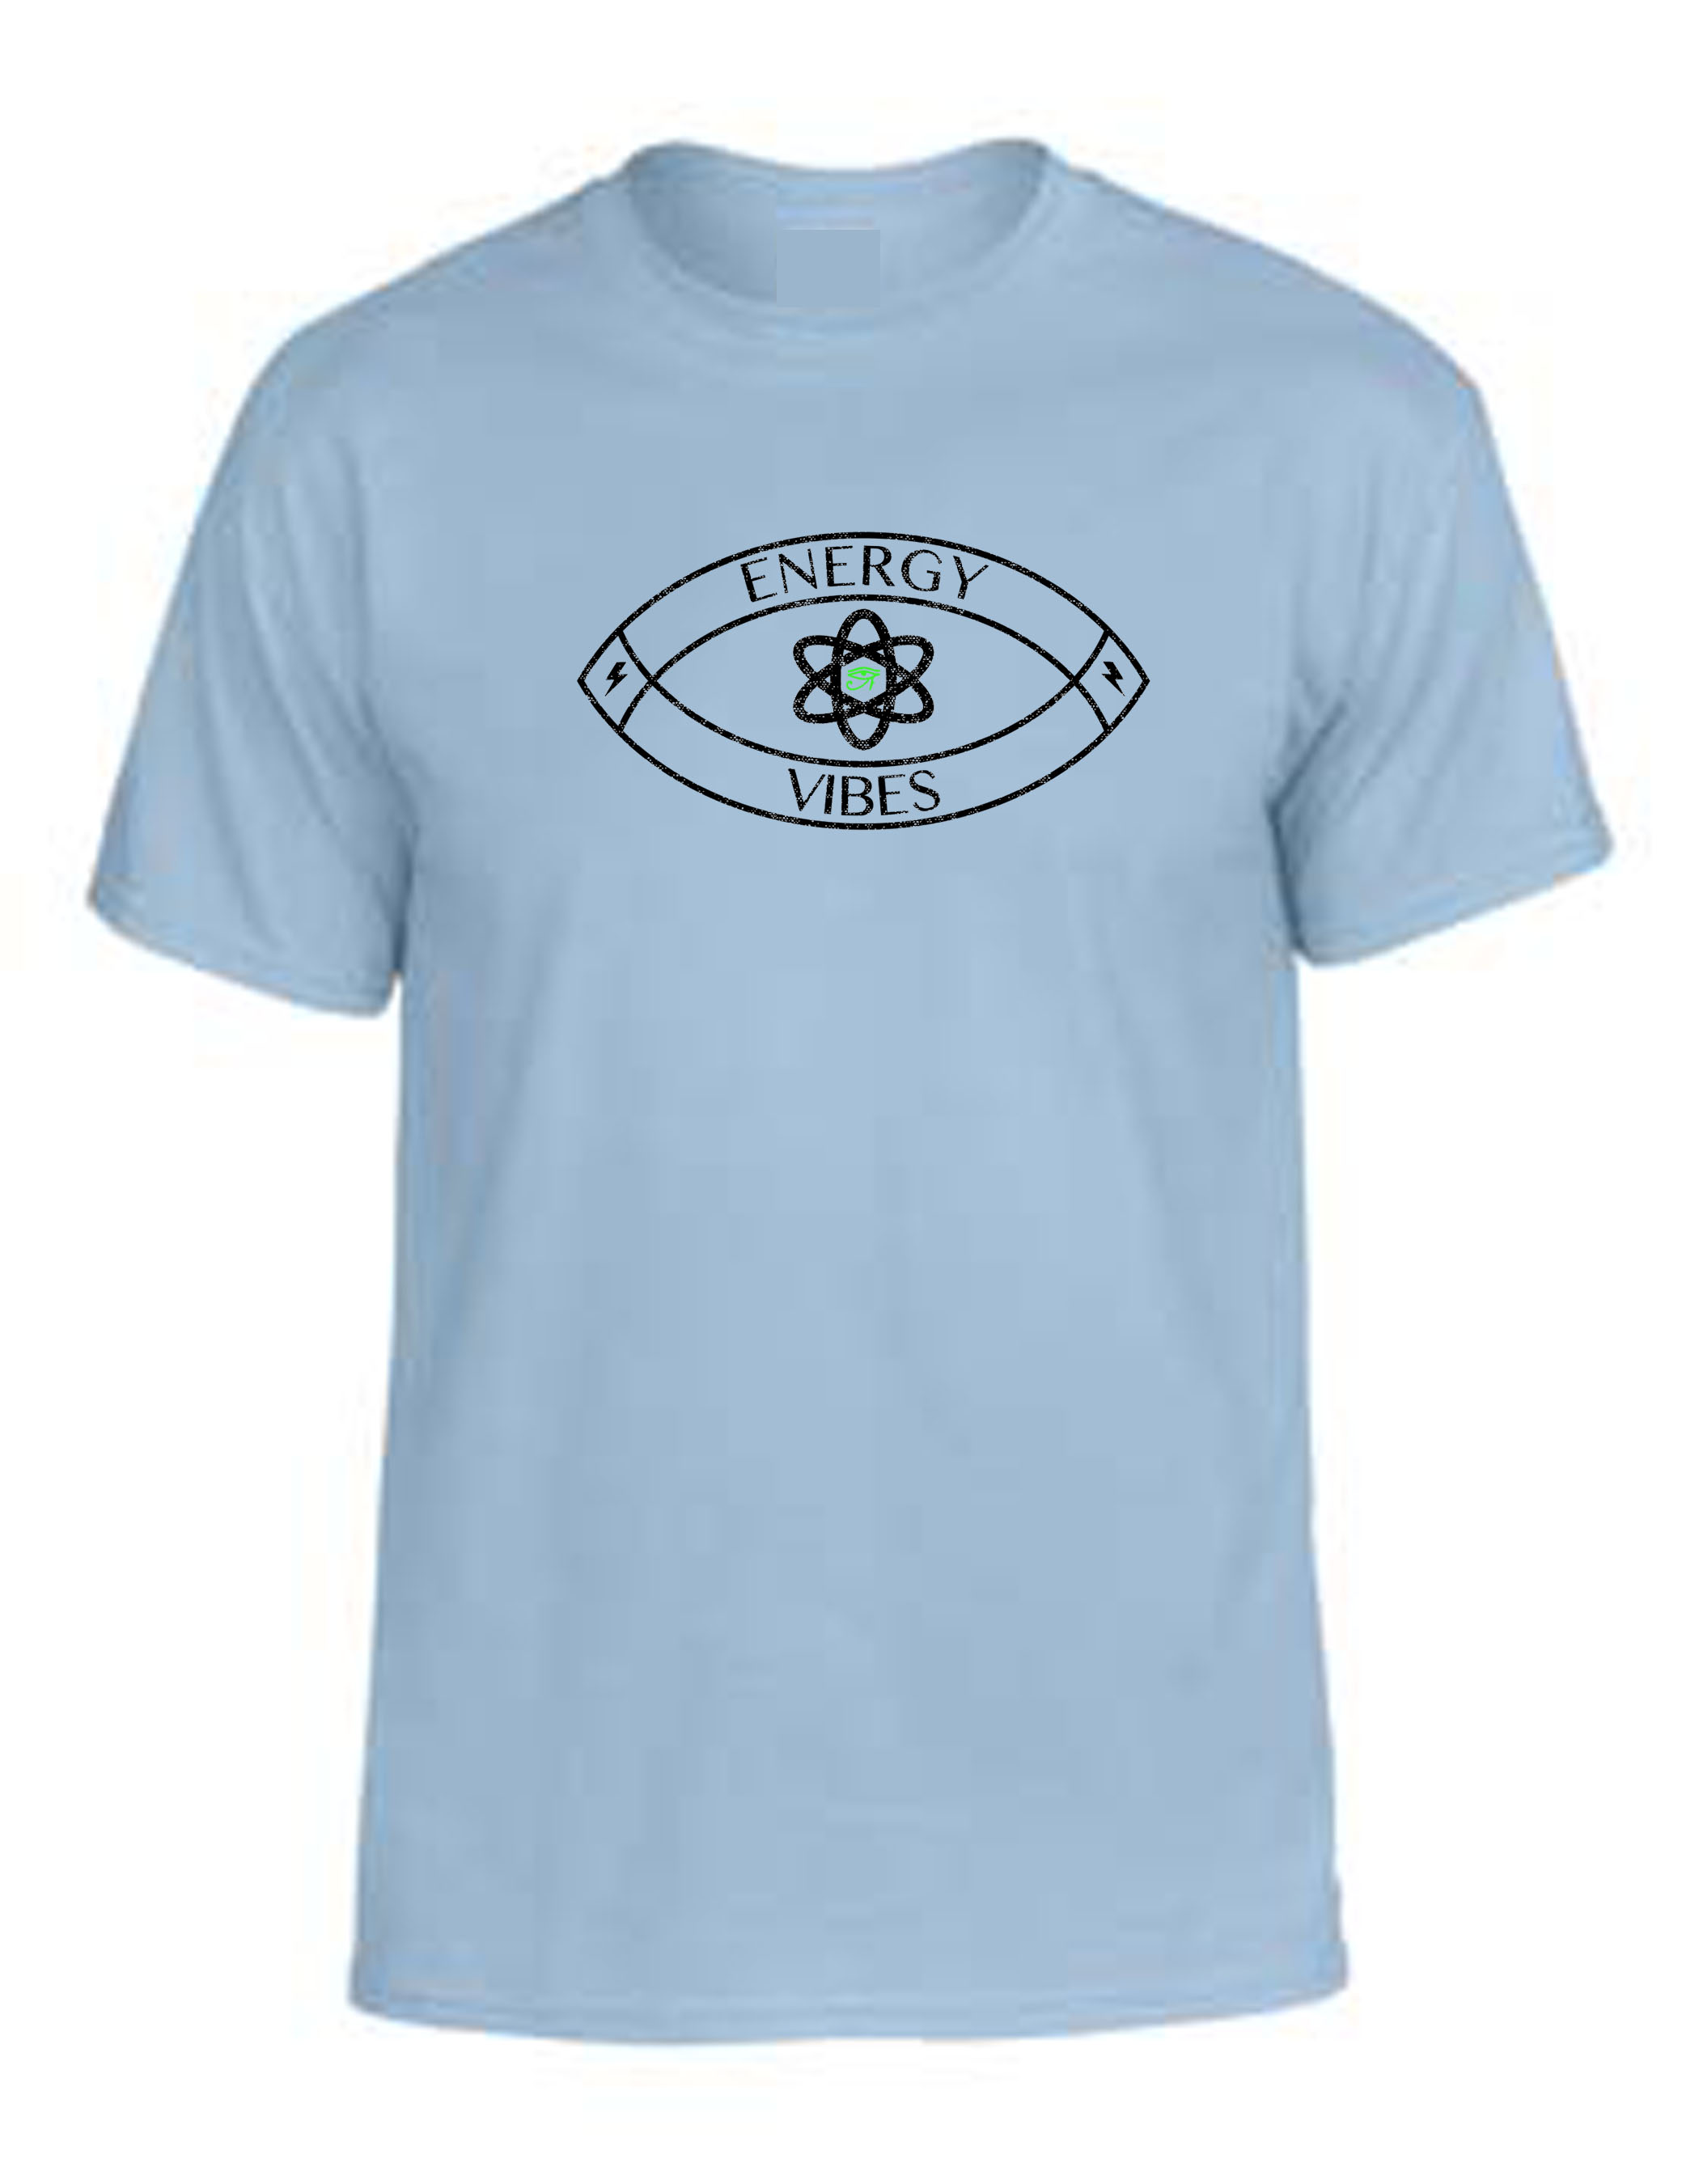 Energy and Vibes Tee Light Blue